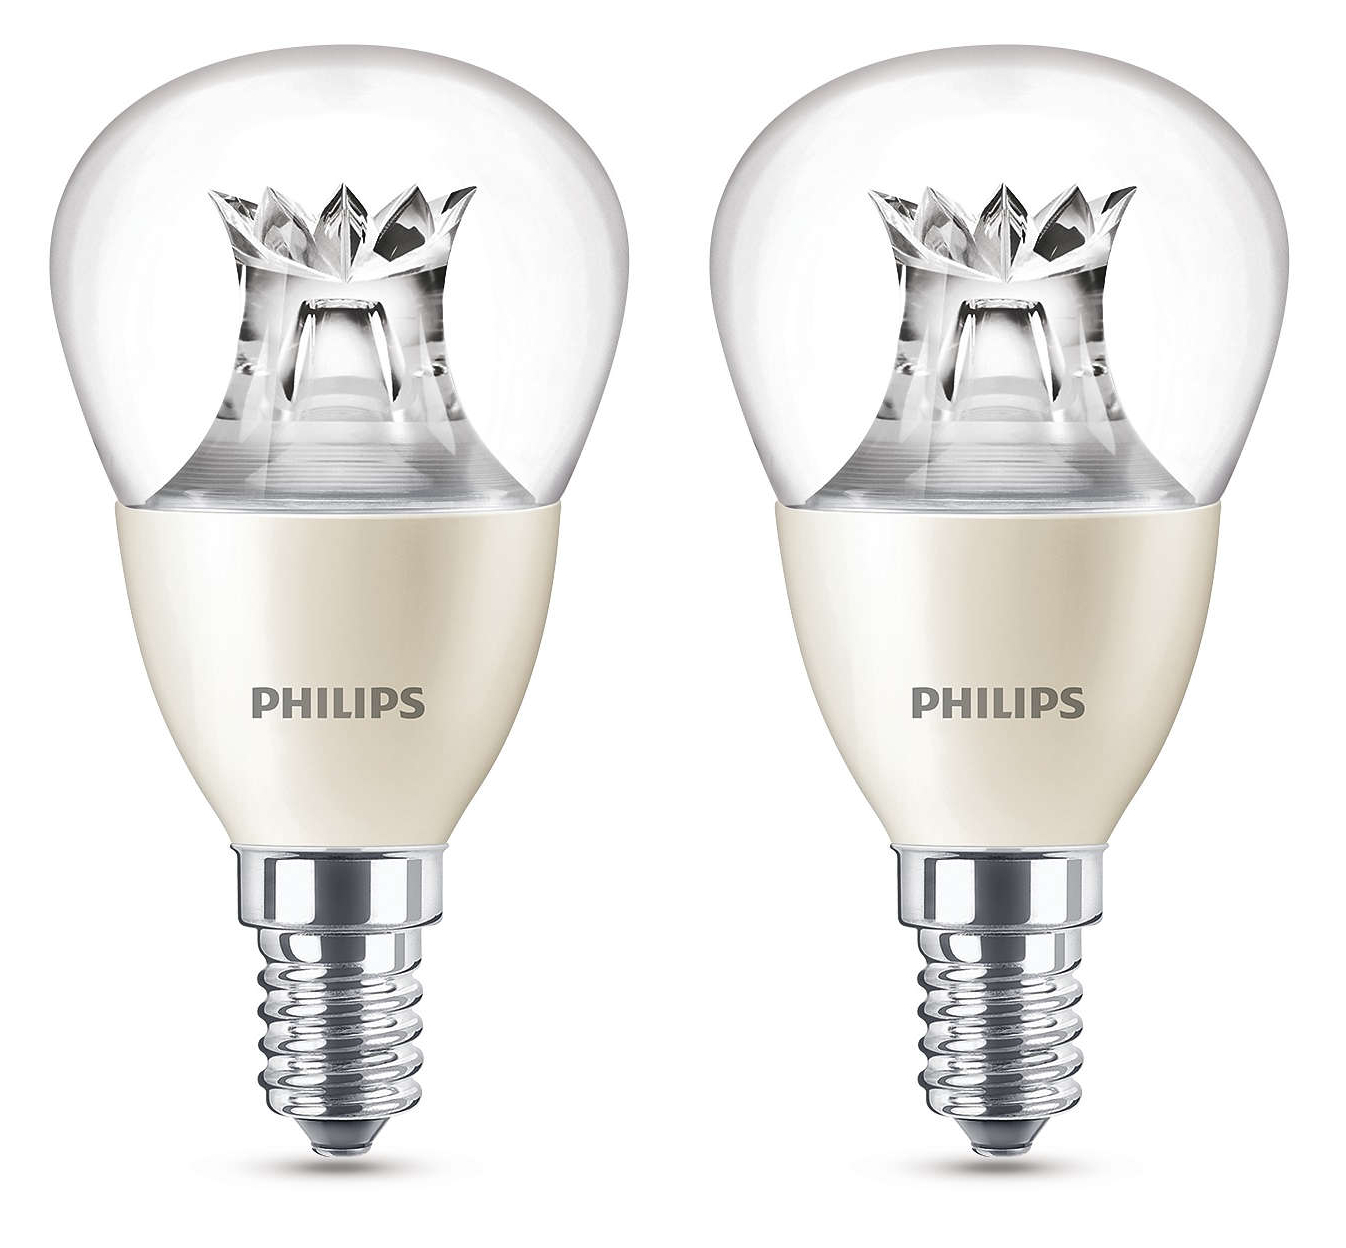 2x philips caldo luminoso led e14 edison 60w regolabile. Black Bedroom Furniture Sets. Home Design Ideas